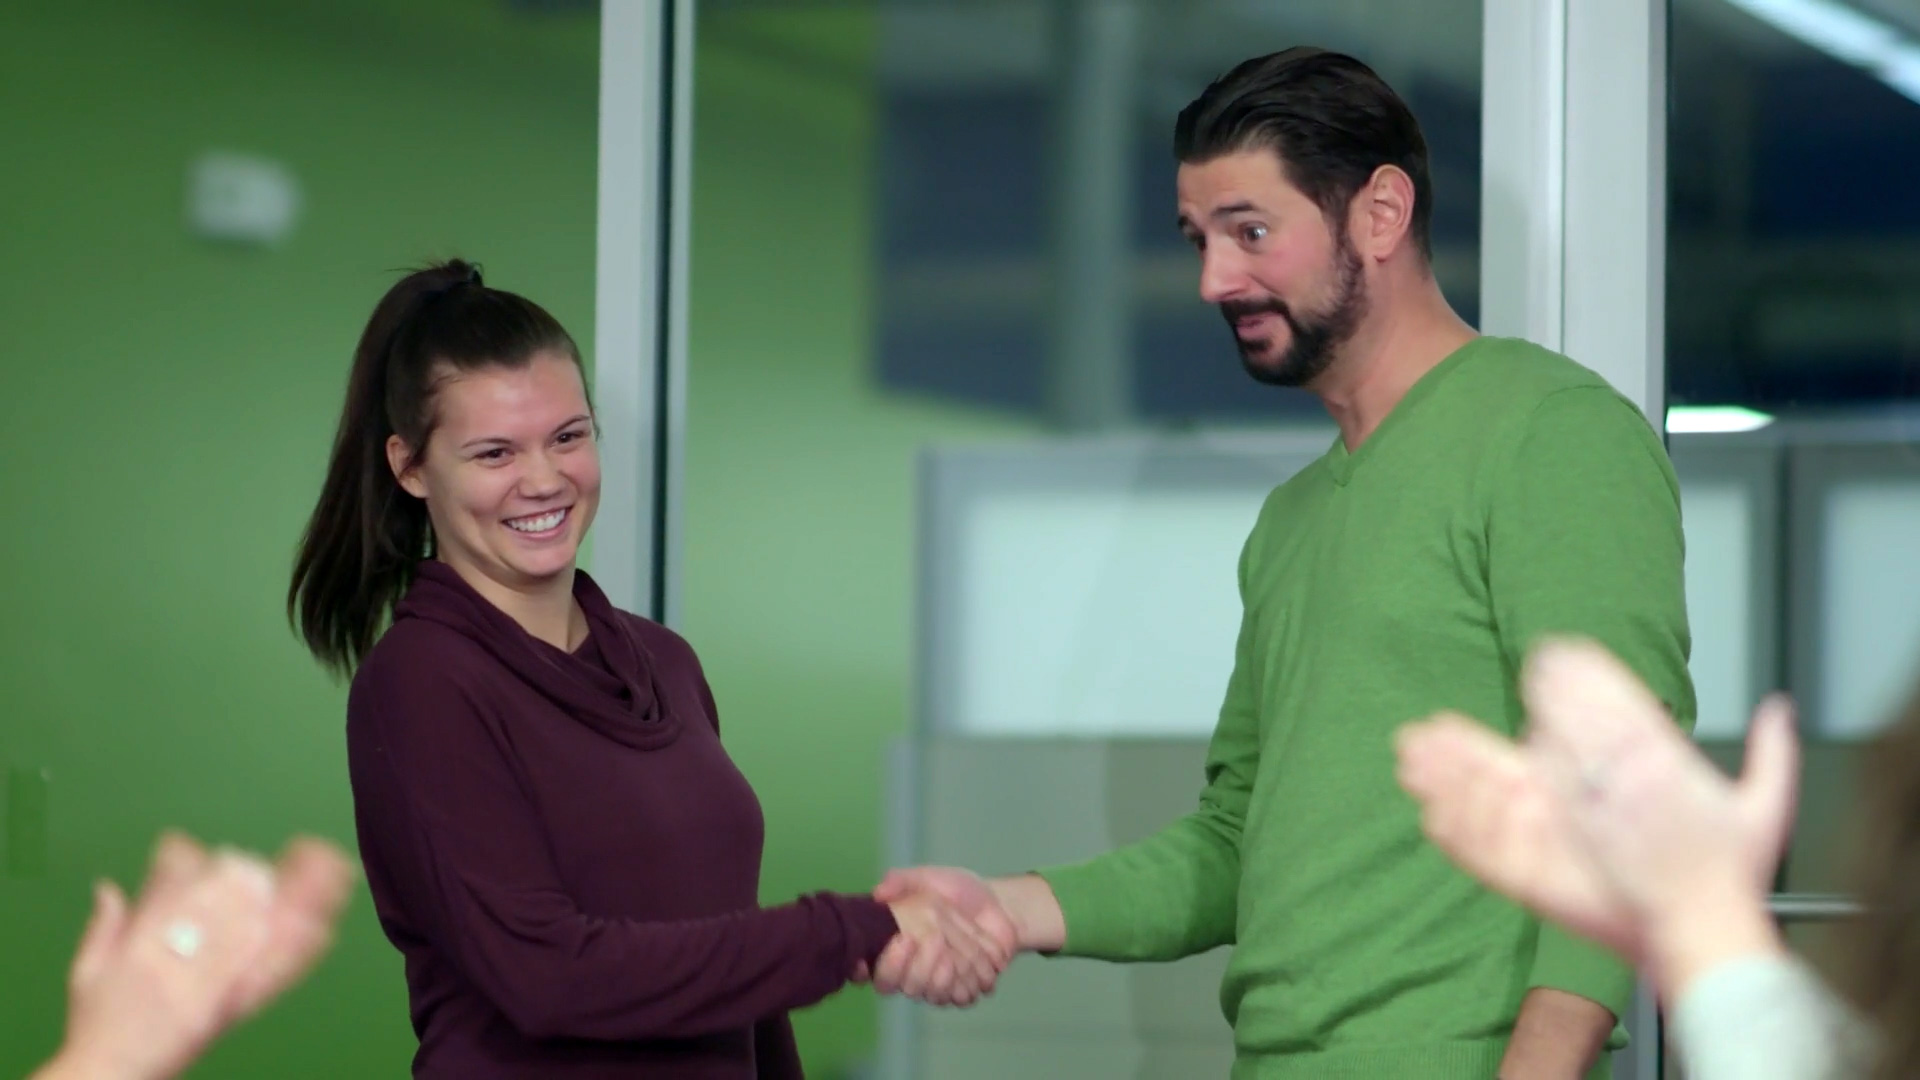 SDI Innovations employees shaking hands at meeting.